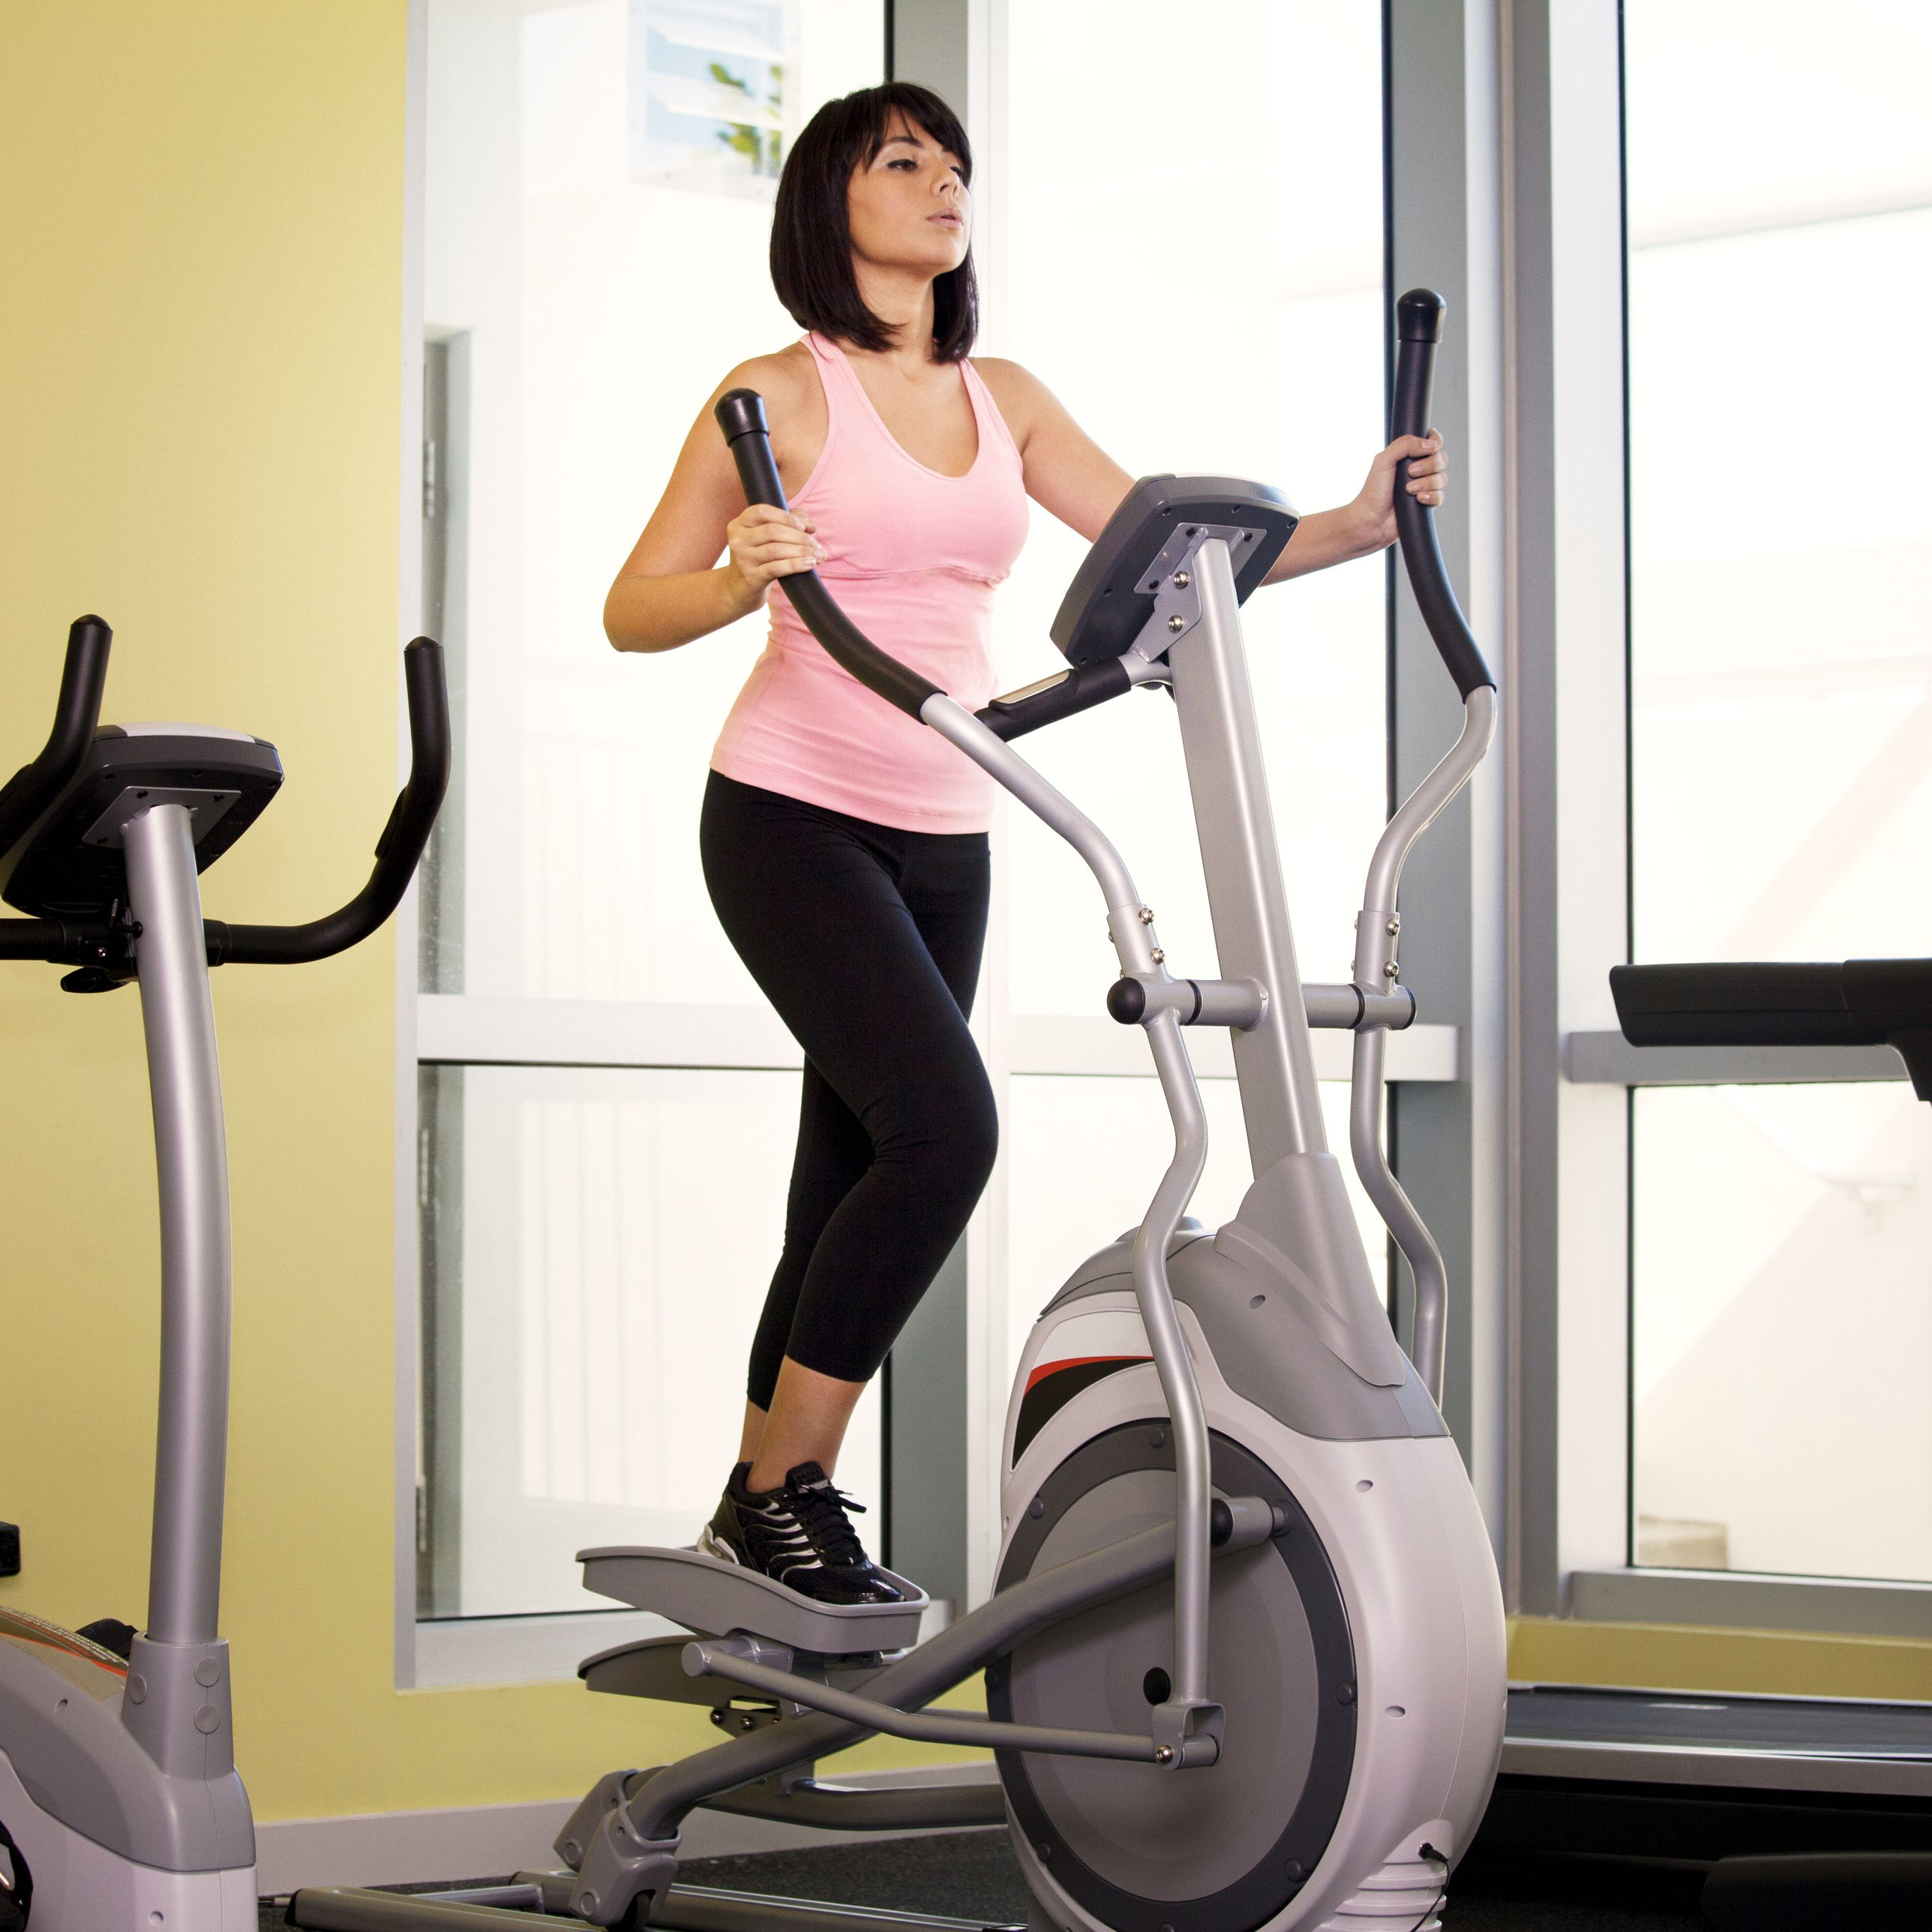 The 7 best ellipticals of 2019